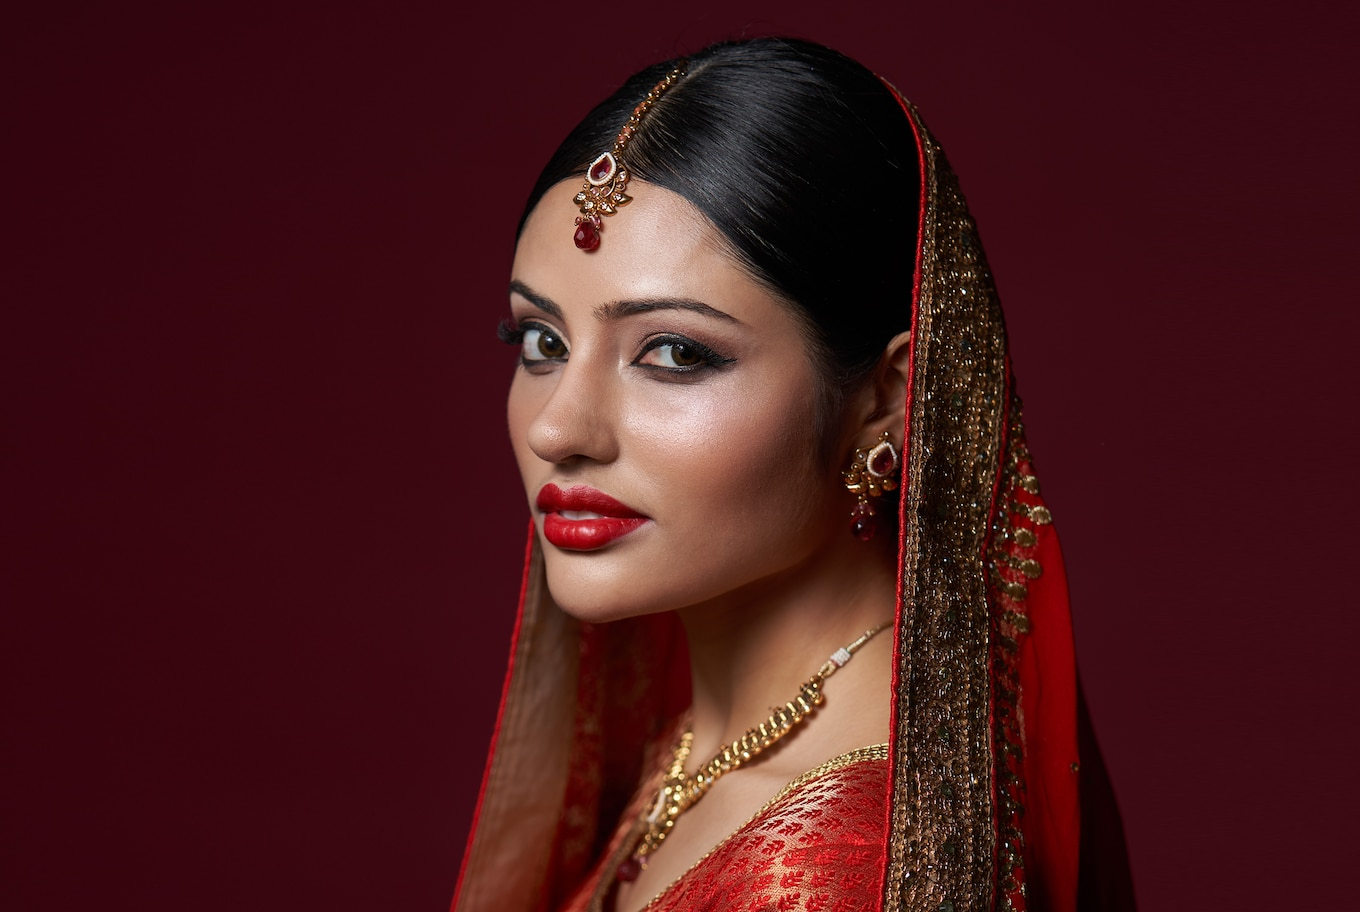 portrait-indian-girl-in-red-gold-ornament-alpha-7RIII